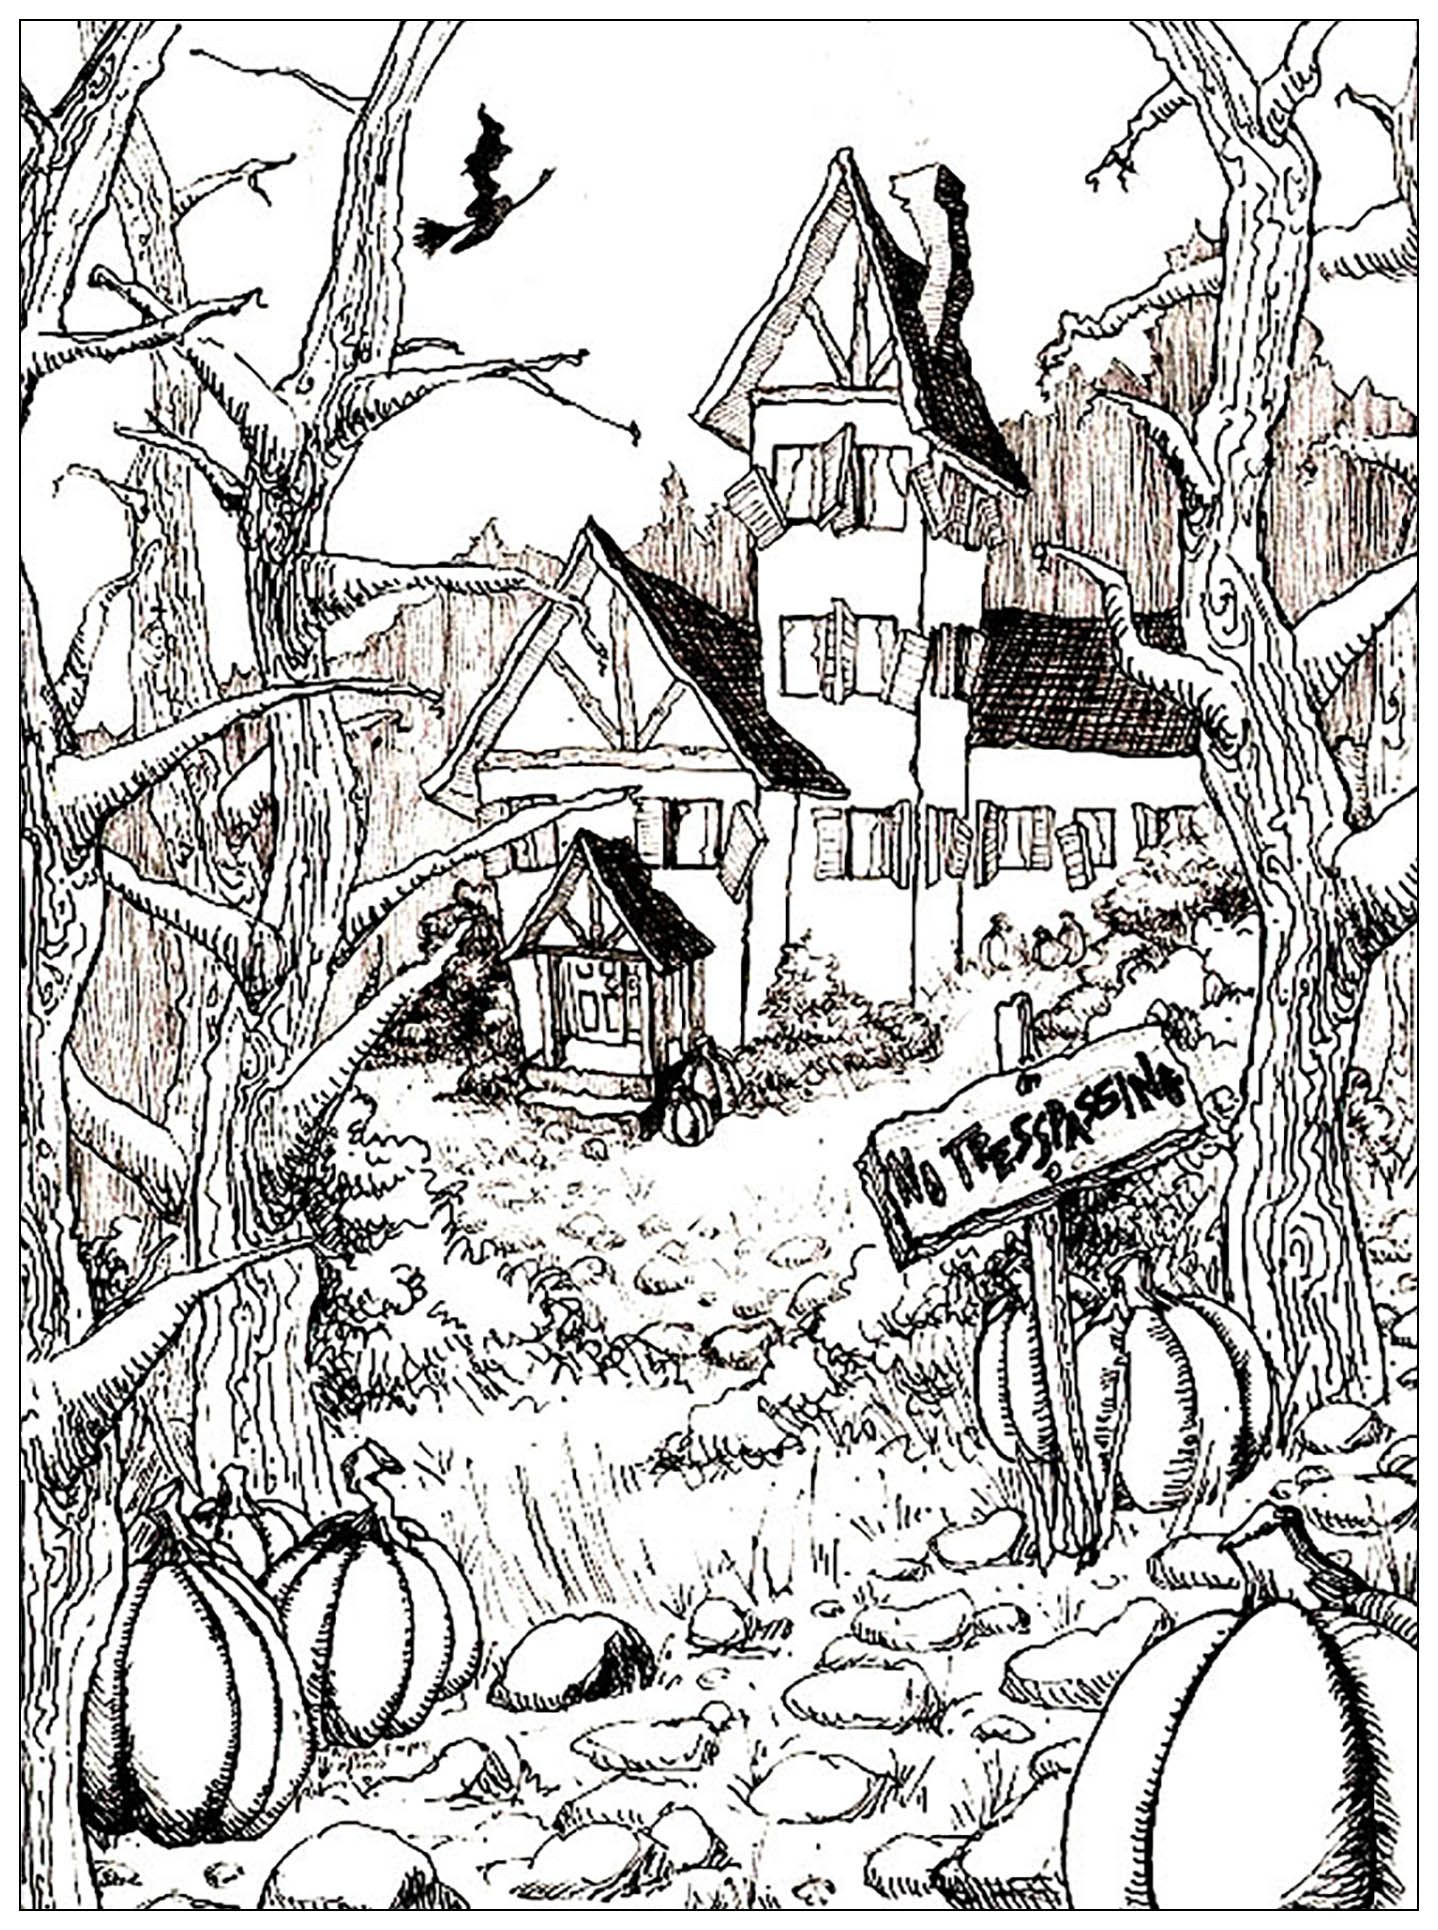 Parade coloring pages to print for adults - Free Coloring Page Coloring Halloween Difficult On The Theme Of Halloween Here Is A Very Rich Draing Of A Haunted House At The Bottom Of A Garden Full Of